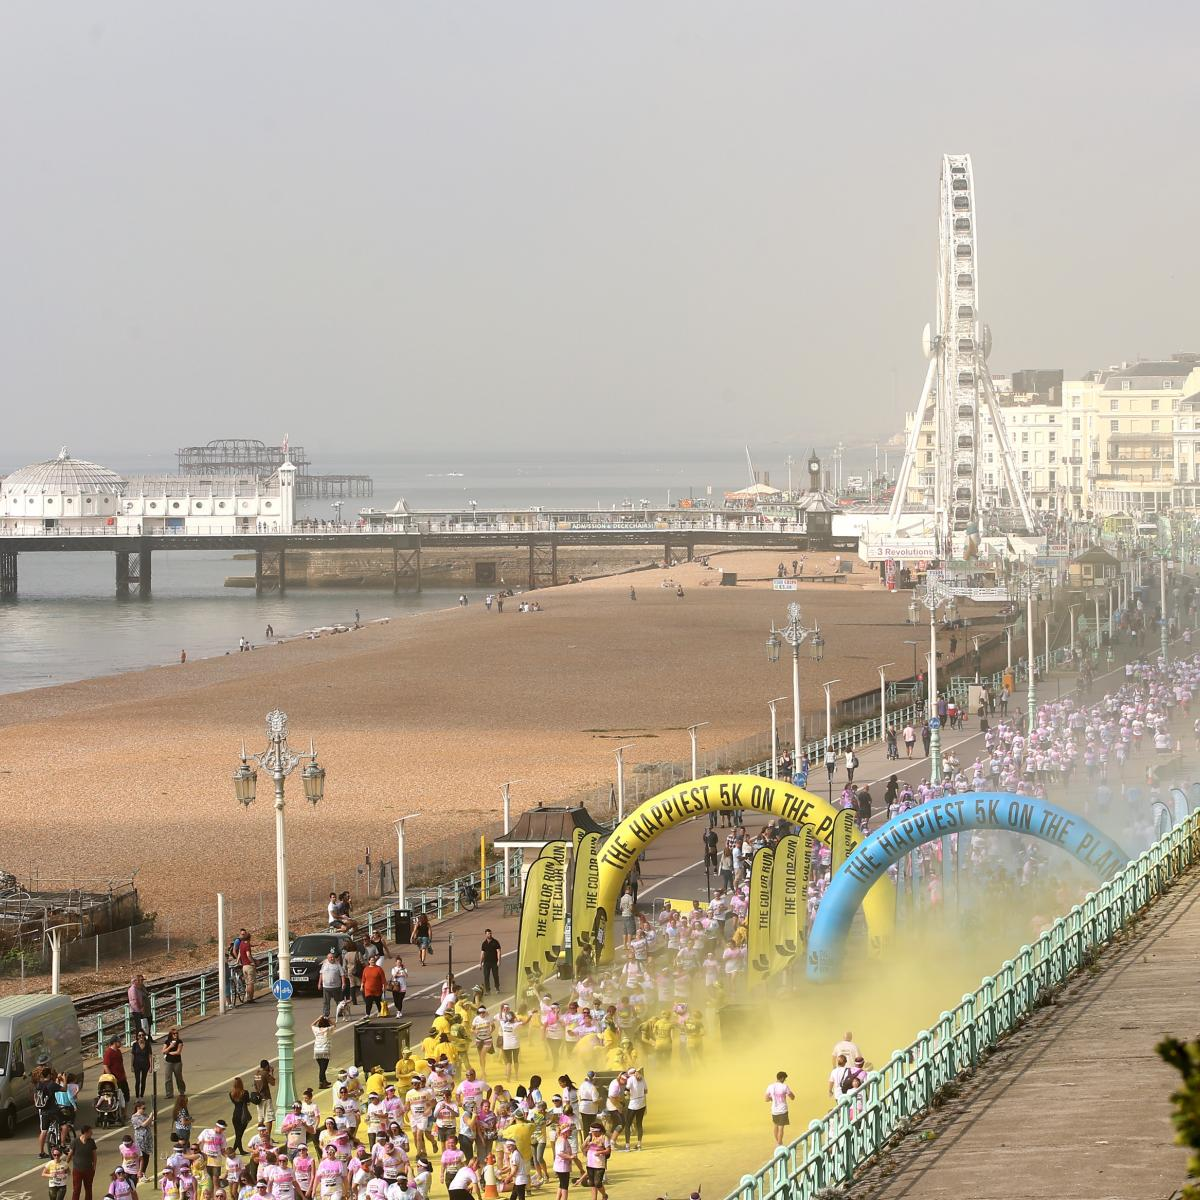 Brighton Marathon 2018 Results: Men's and Women's Top Finishers